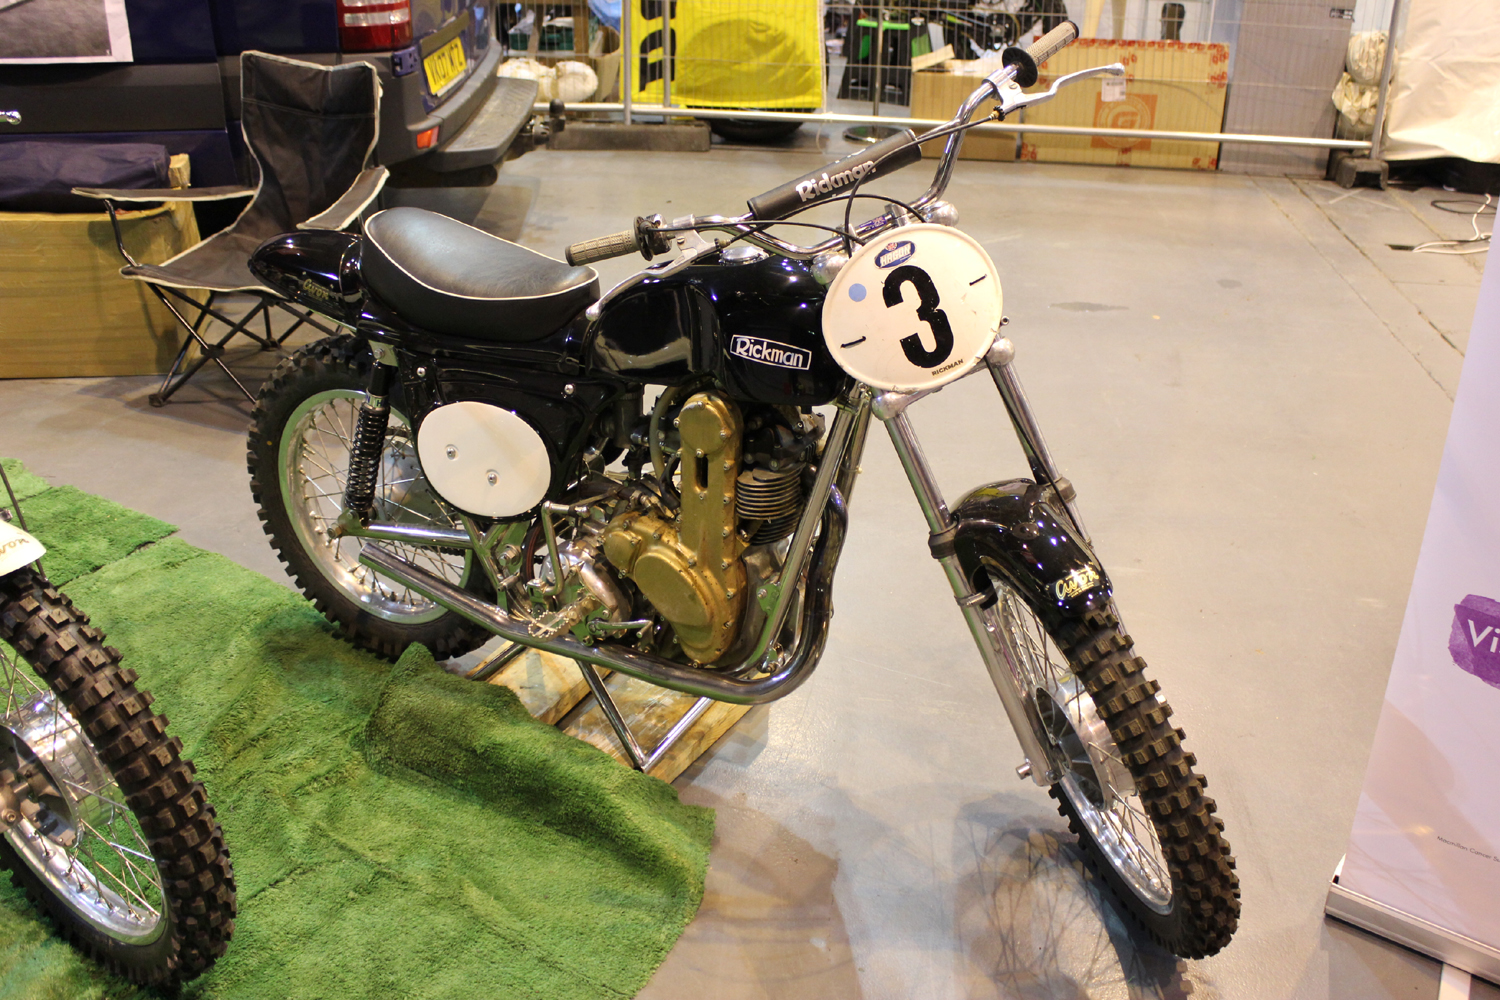 classicdirtbikerider.com-photo by Mr J-2015 Telford classic dirt bike show-CLASSIC RICKMAN SCRAMBLER